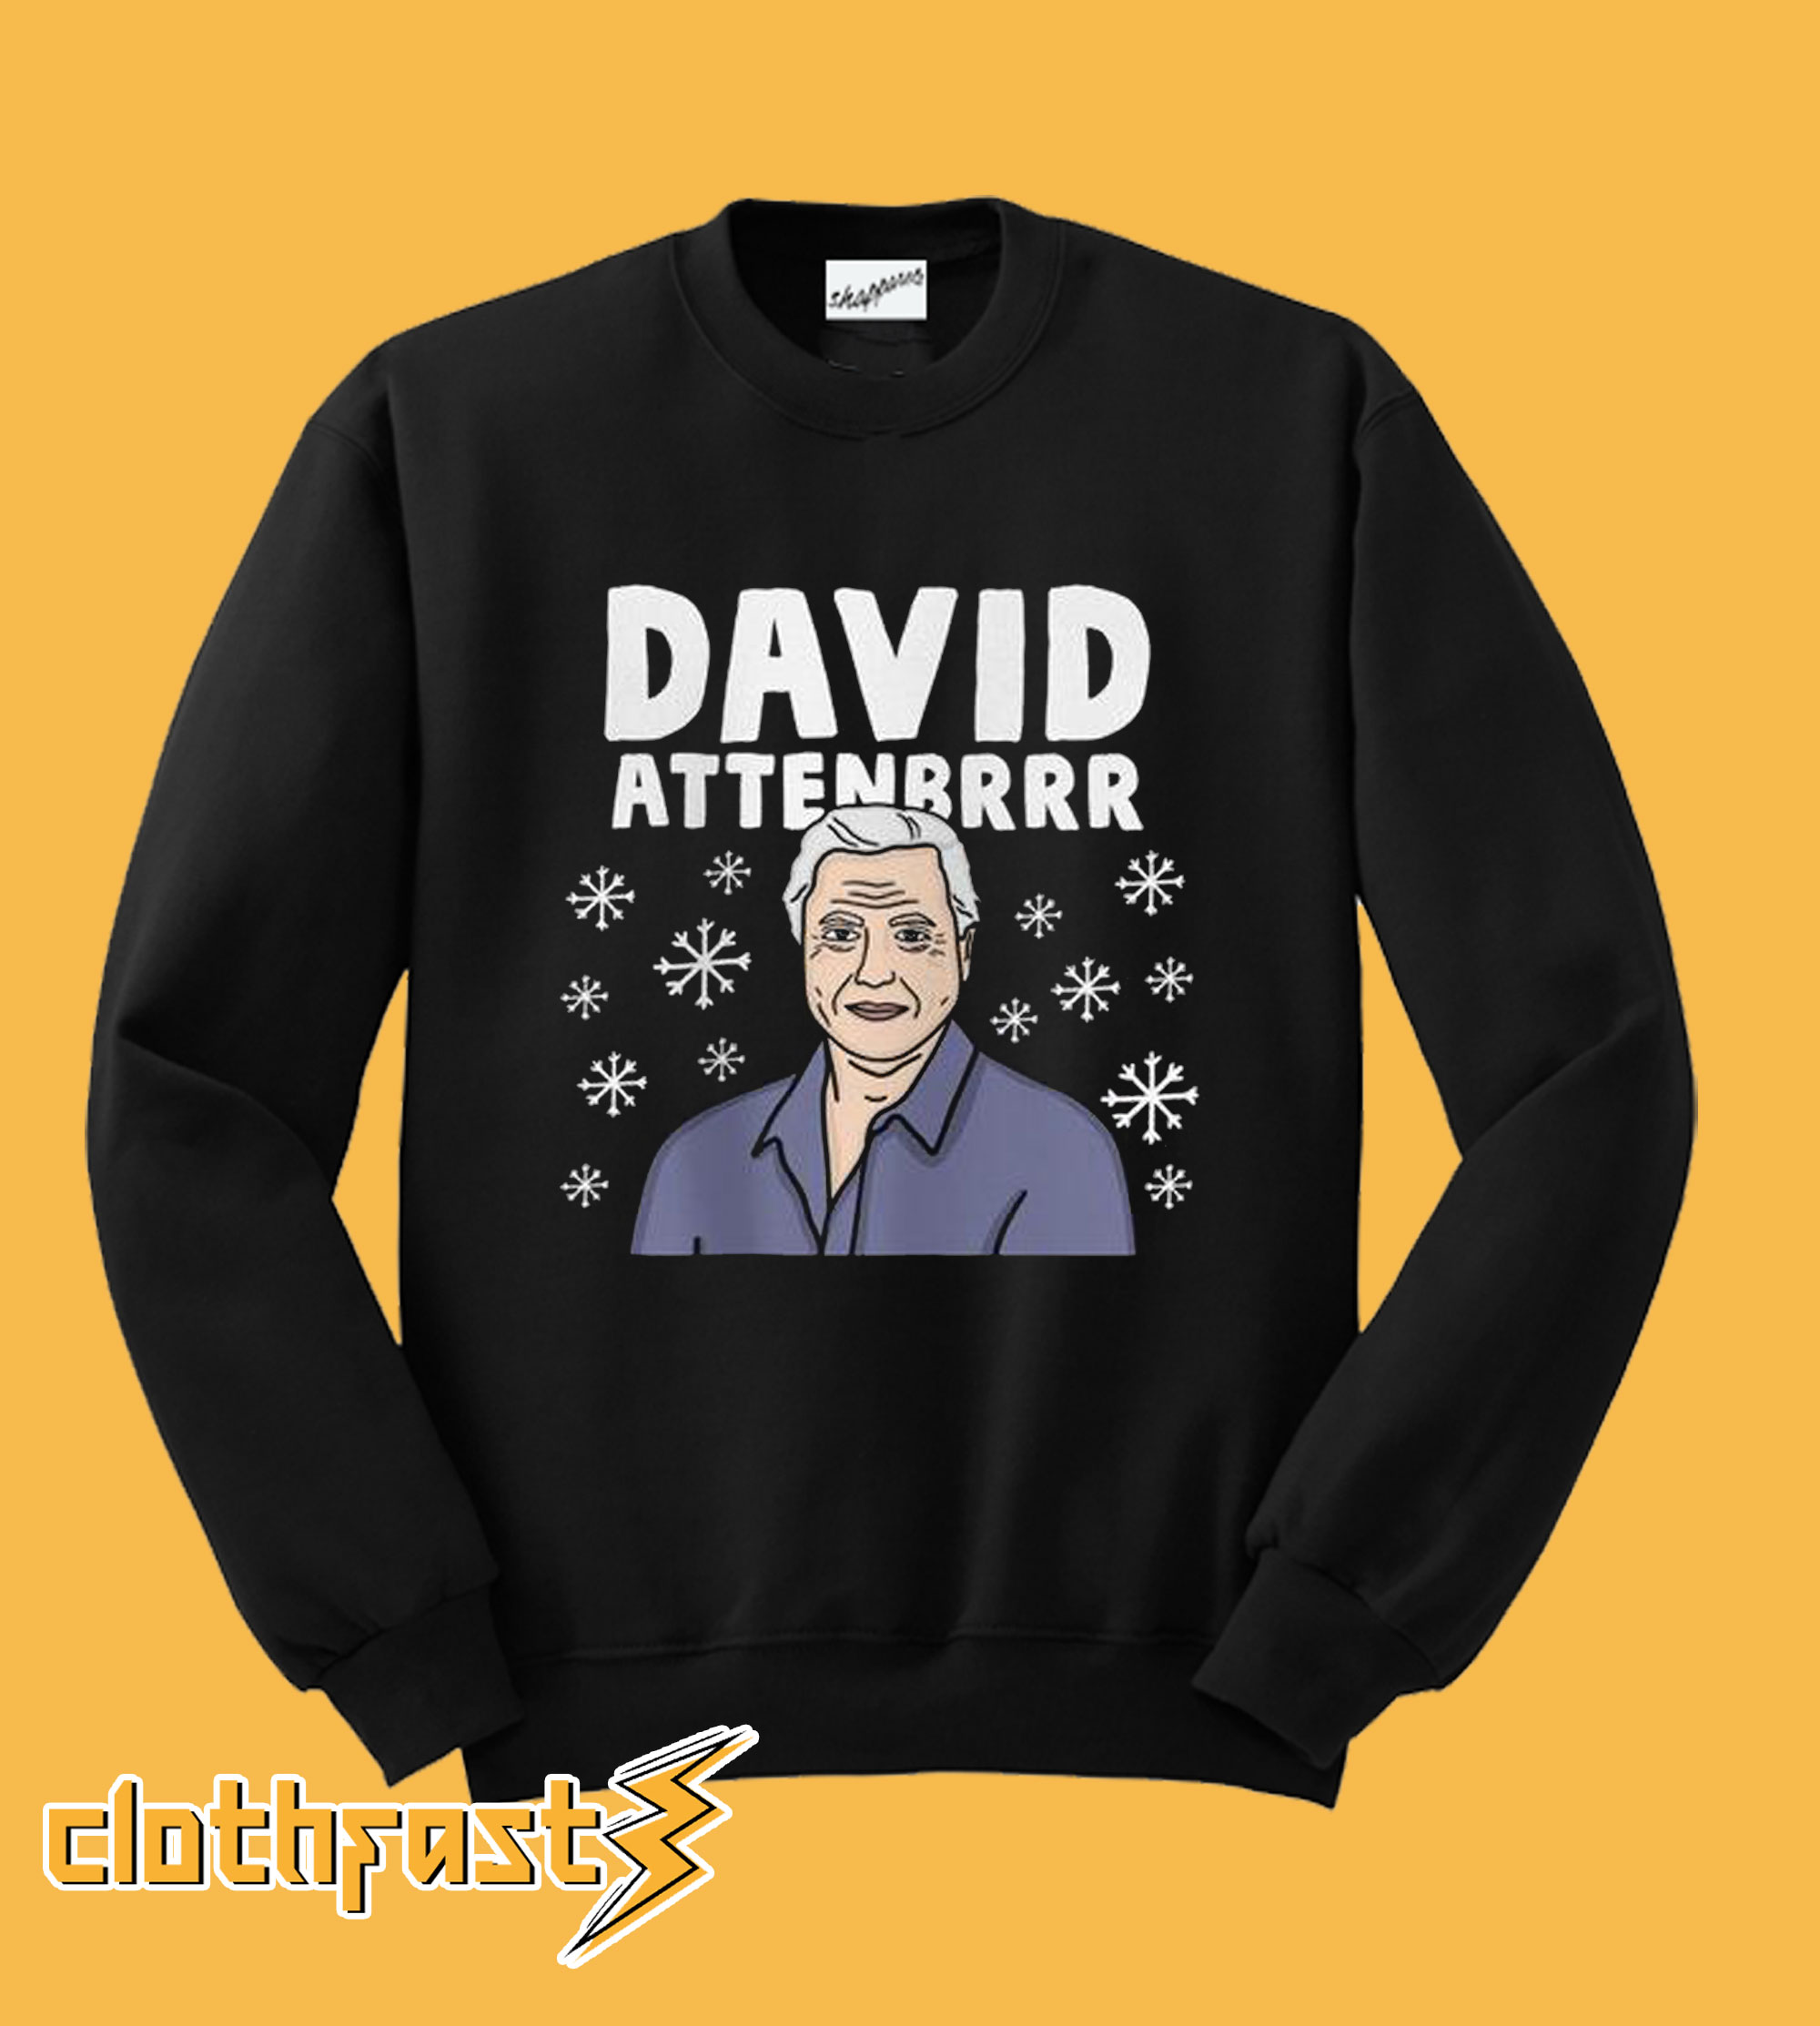 David Attenbrrr Christmas Sweatshirt